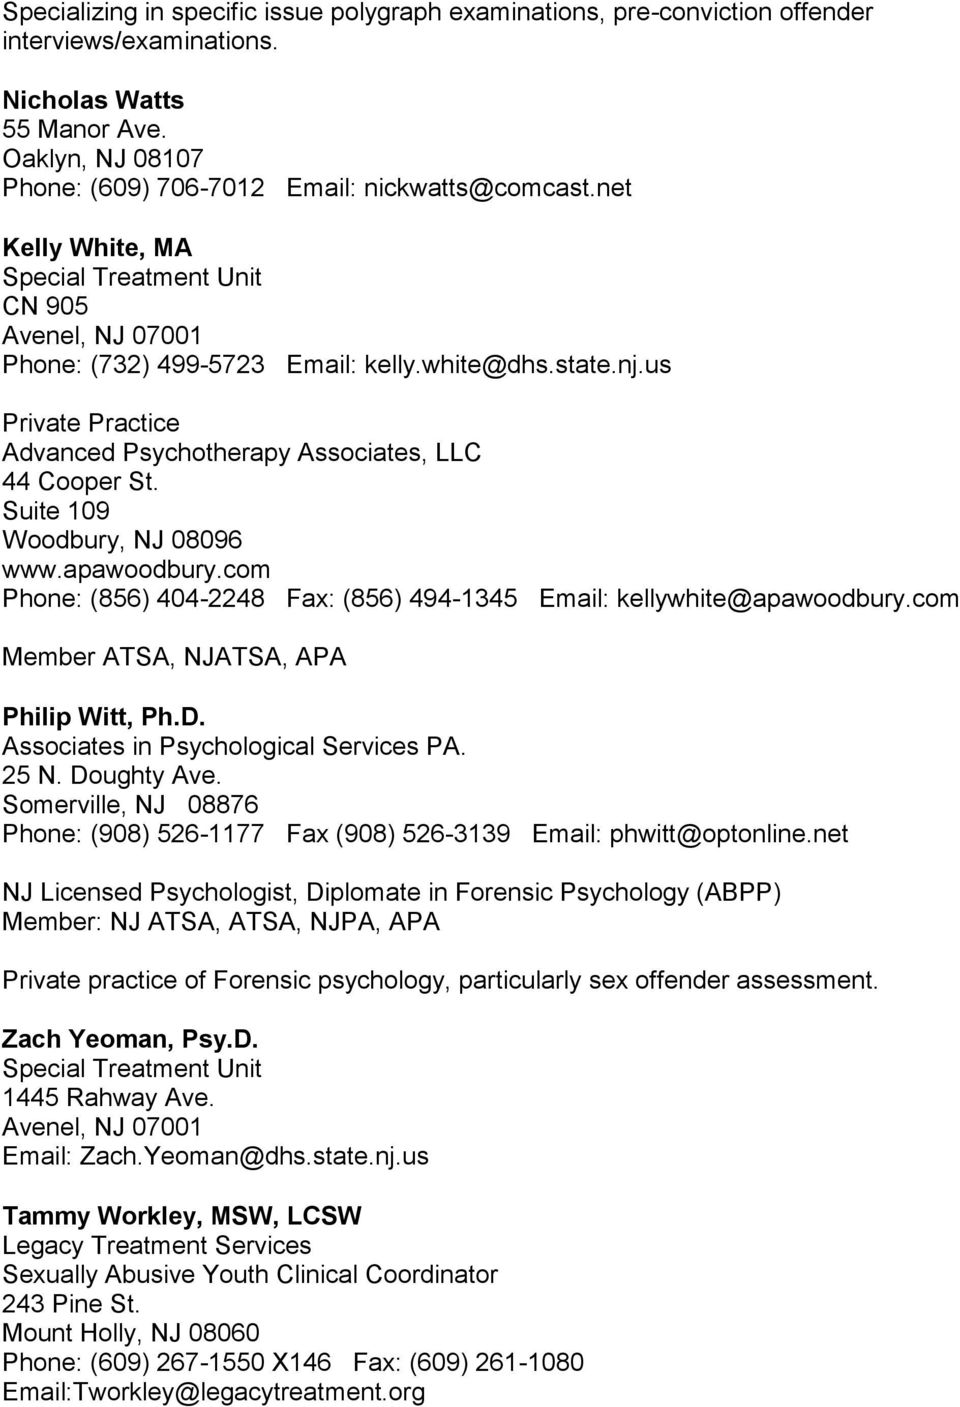 com Phone: (856) 404-2248 Fax: (856) 494-1345 Email: kellywhite@apawoodbury.com Member ATSA, NJATSA, APA Philip Witt, Ph.D. Associates in Psychological Services PA. 25 N. Doughty Ave.